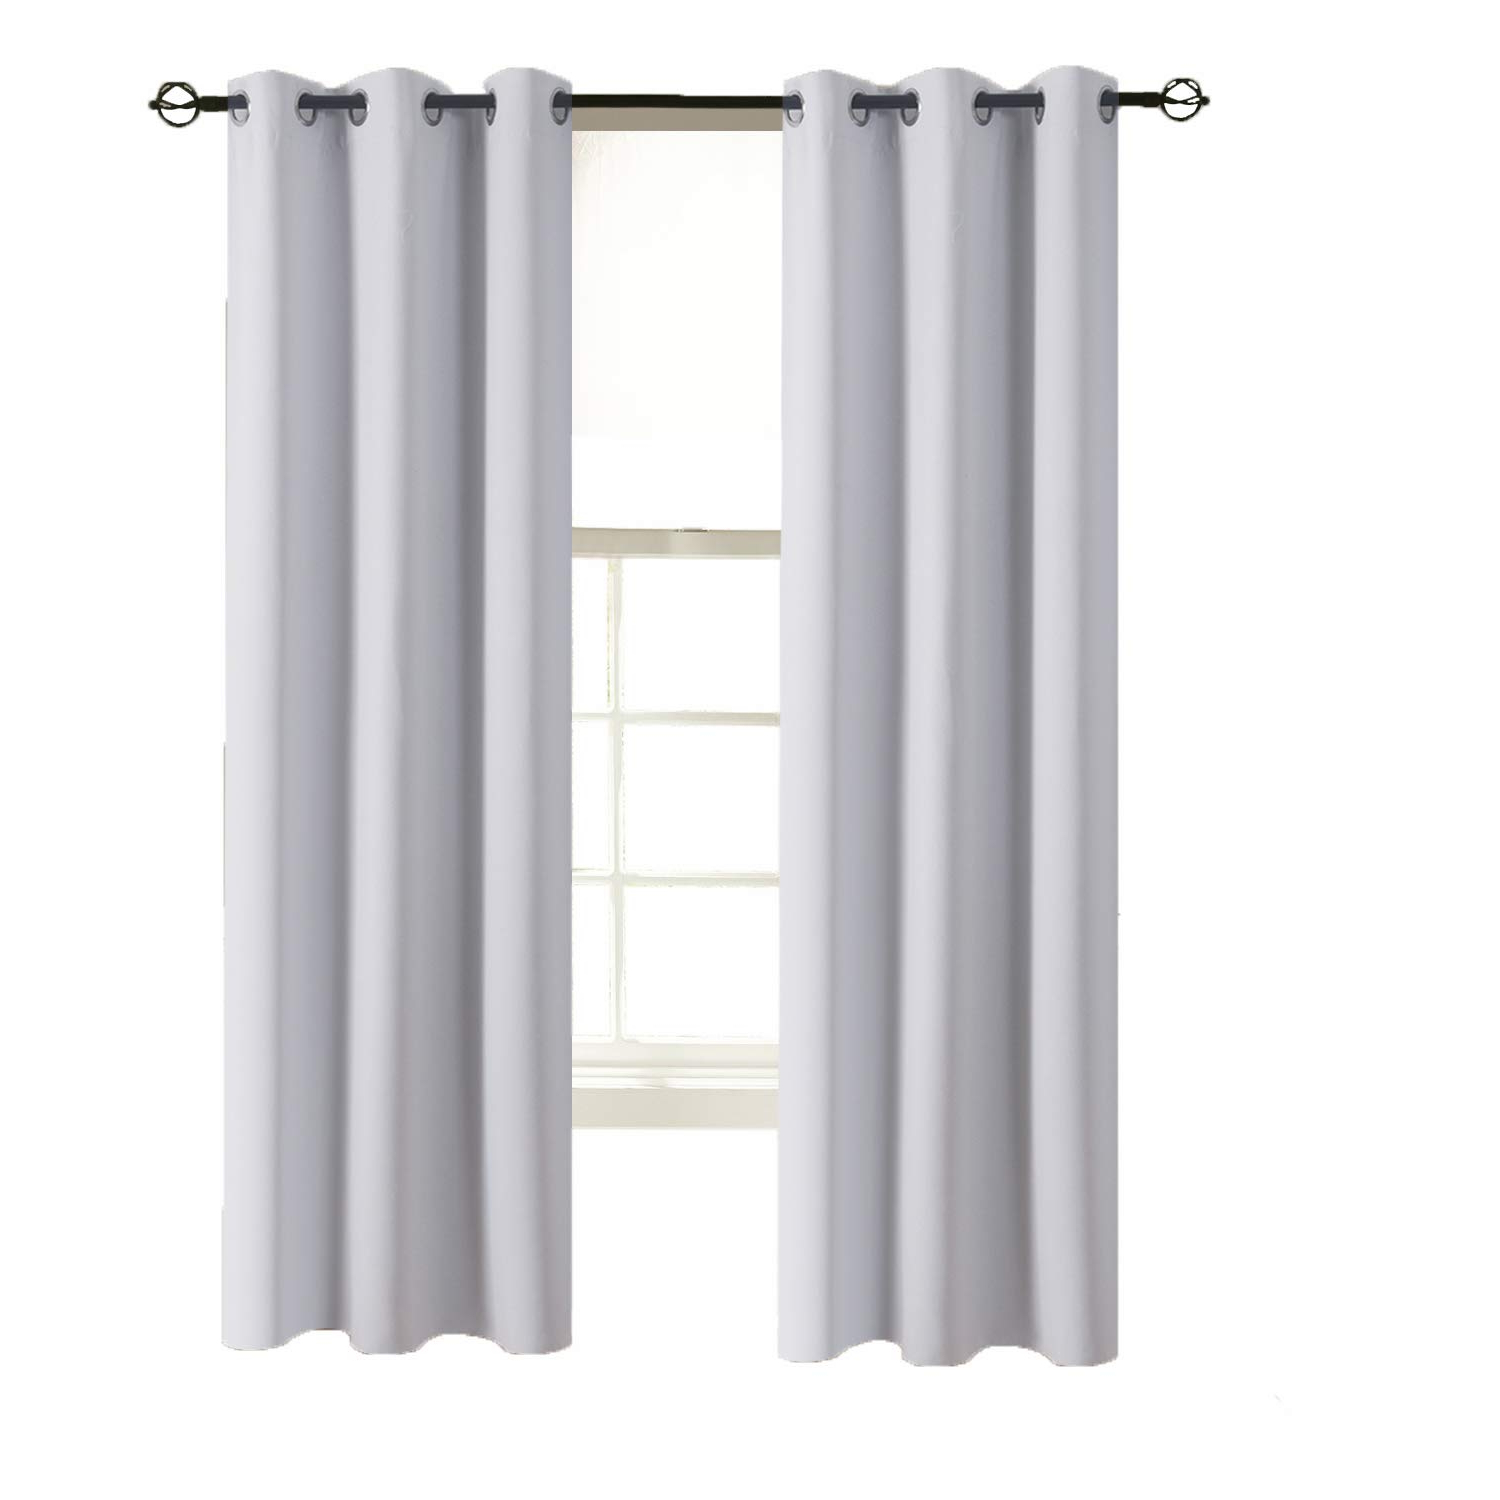 "Recent Keyes Blackout Single Curtain Panels Within Aquazolax Blackout Curtains Window Drapes Solid Blackout Thermal Curtain Panels 42""x63"" With Eyelets Top For Office, Single Panel, Greyish White (View 9 of 20)"